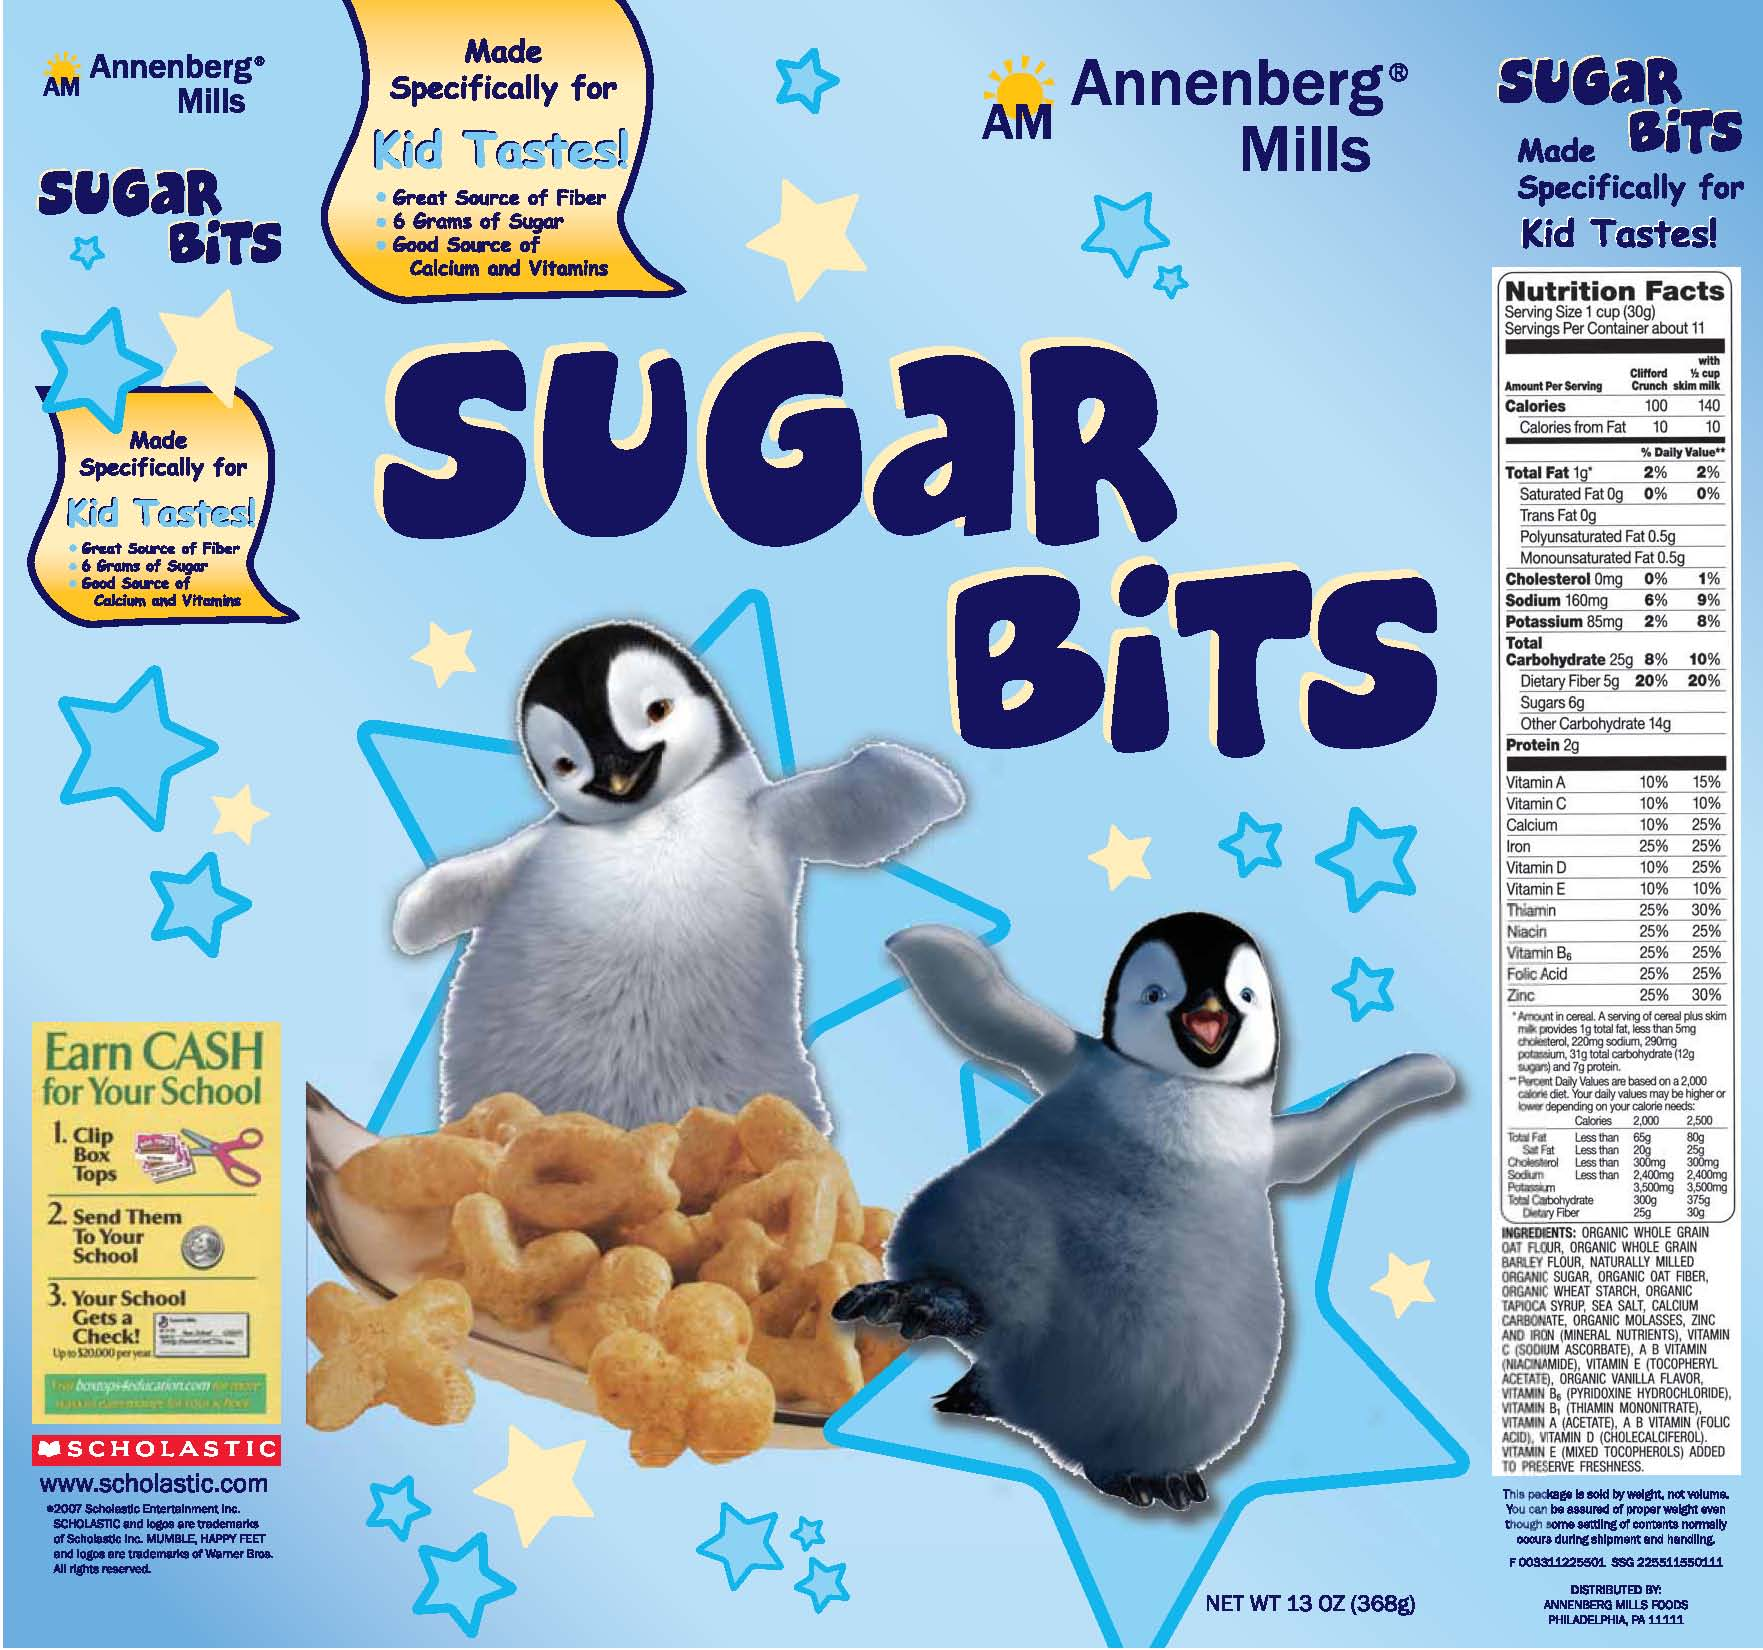 Media Character Use On Food Packaging Appears To Influence